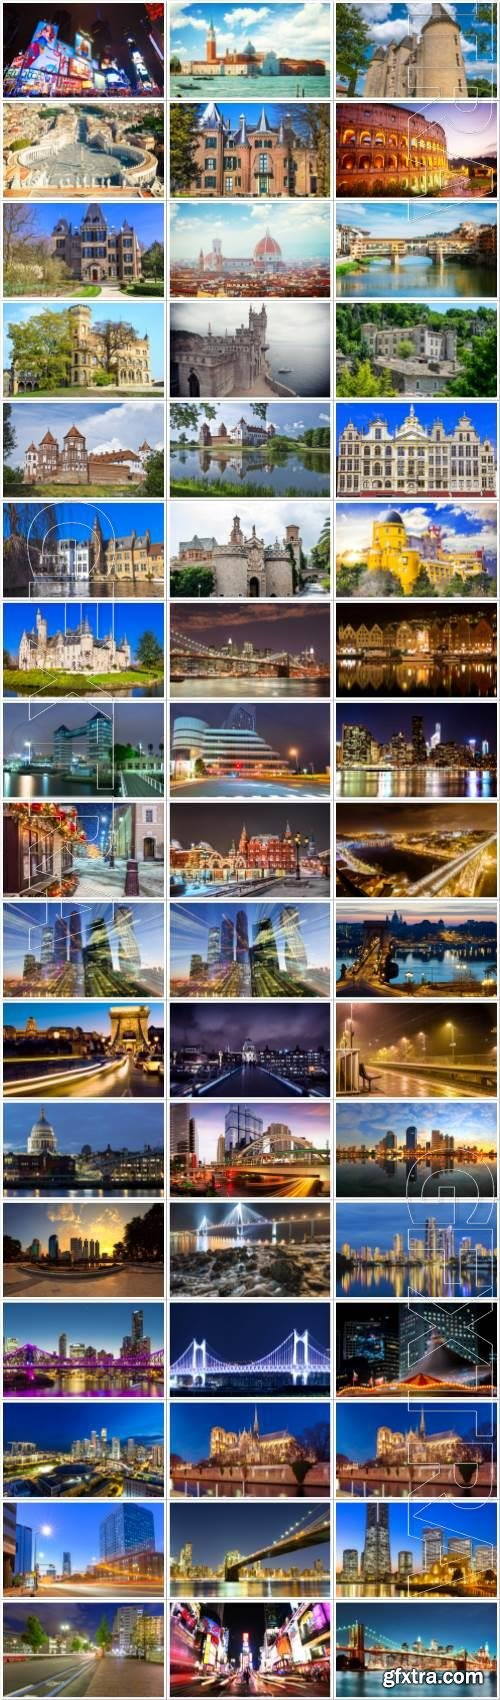 Cities and architecture large selection of stock photos